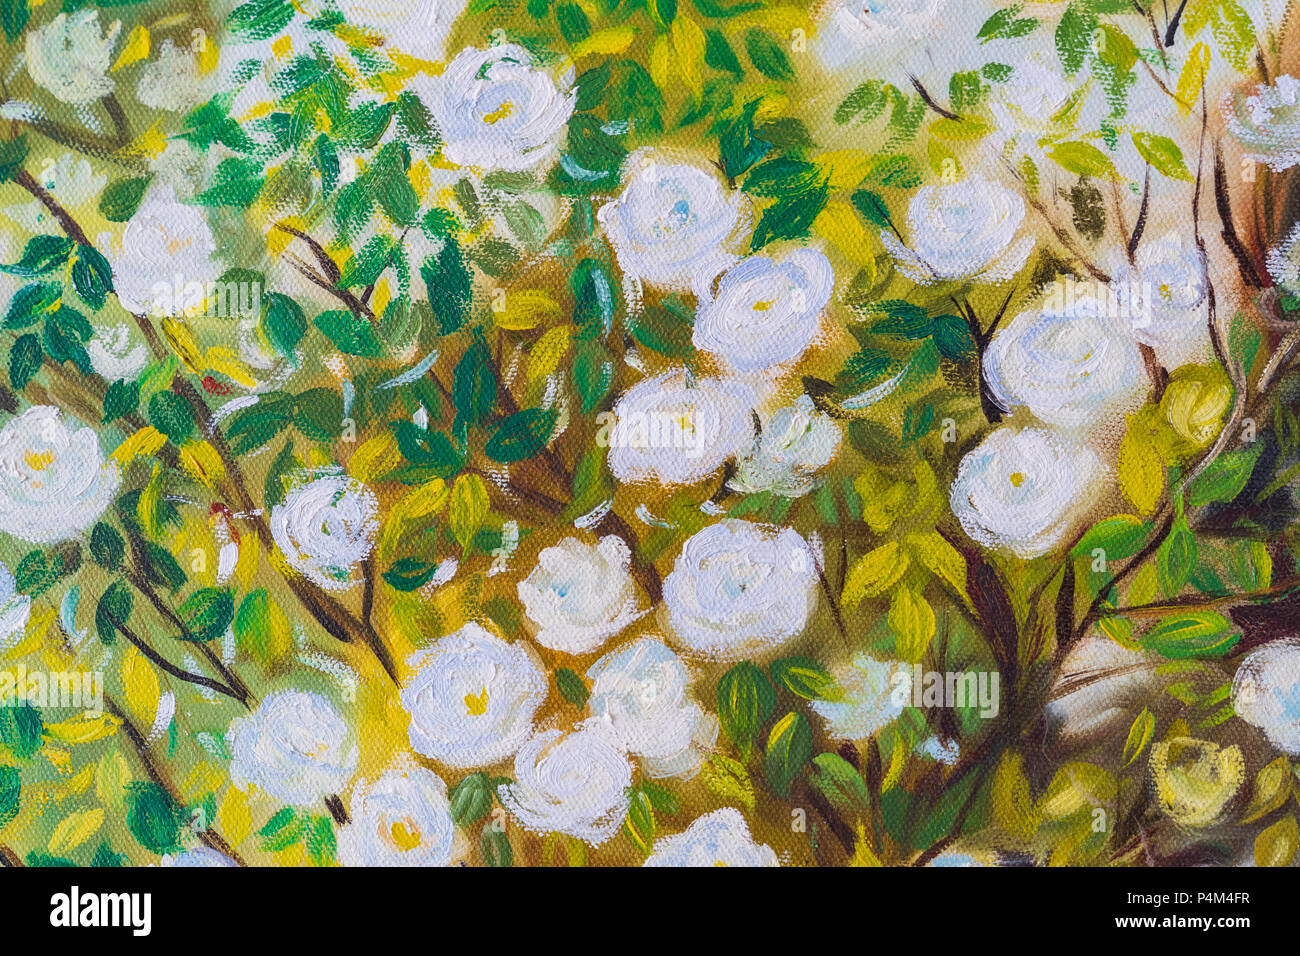 Acrylic Paintings Of Flowers Stock Photos & Acrylic Paintings Of ...